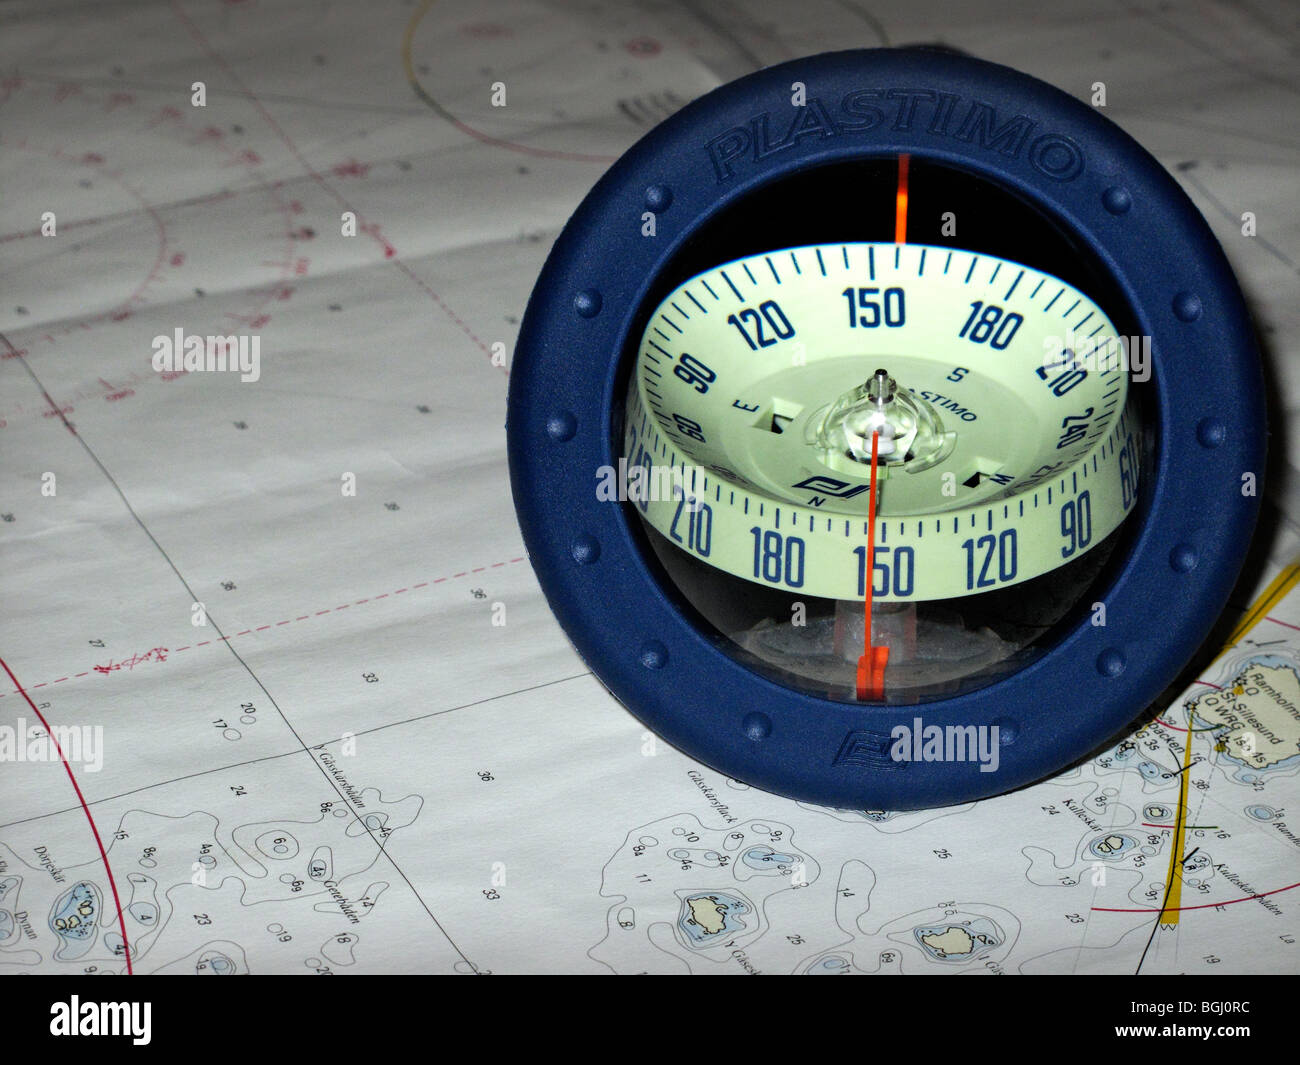 Spherical sailing dinghy compass on surface of nautical chart. - Stock Image